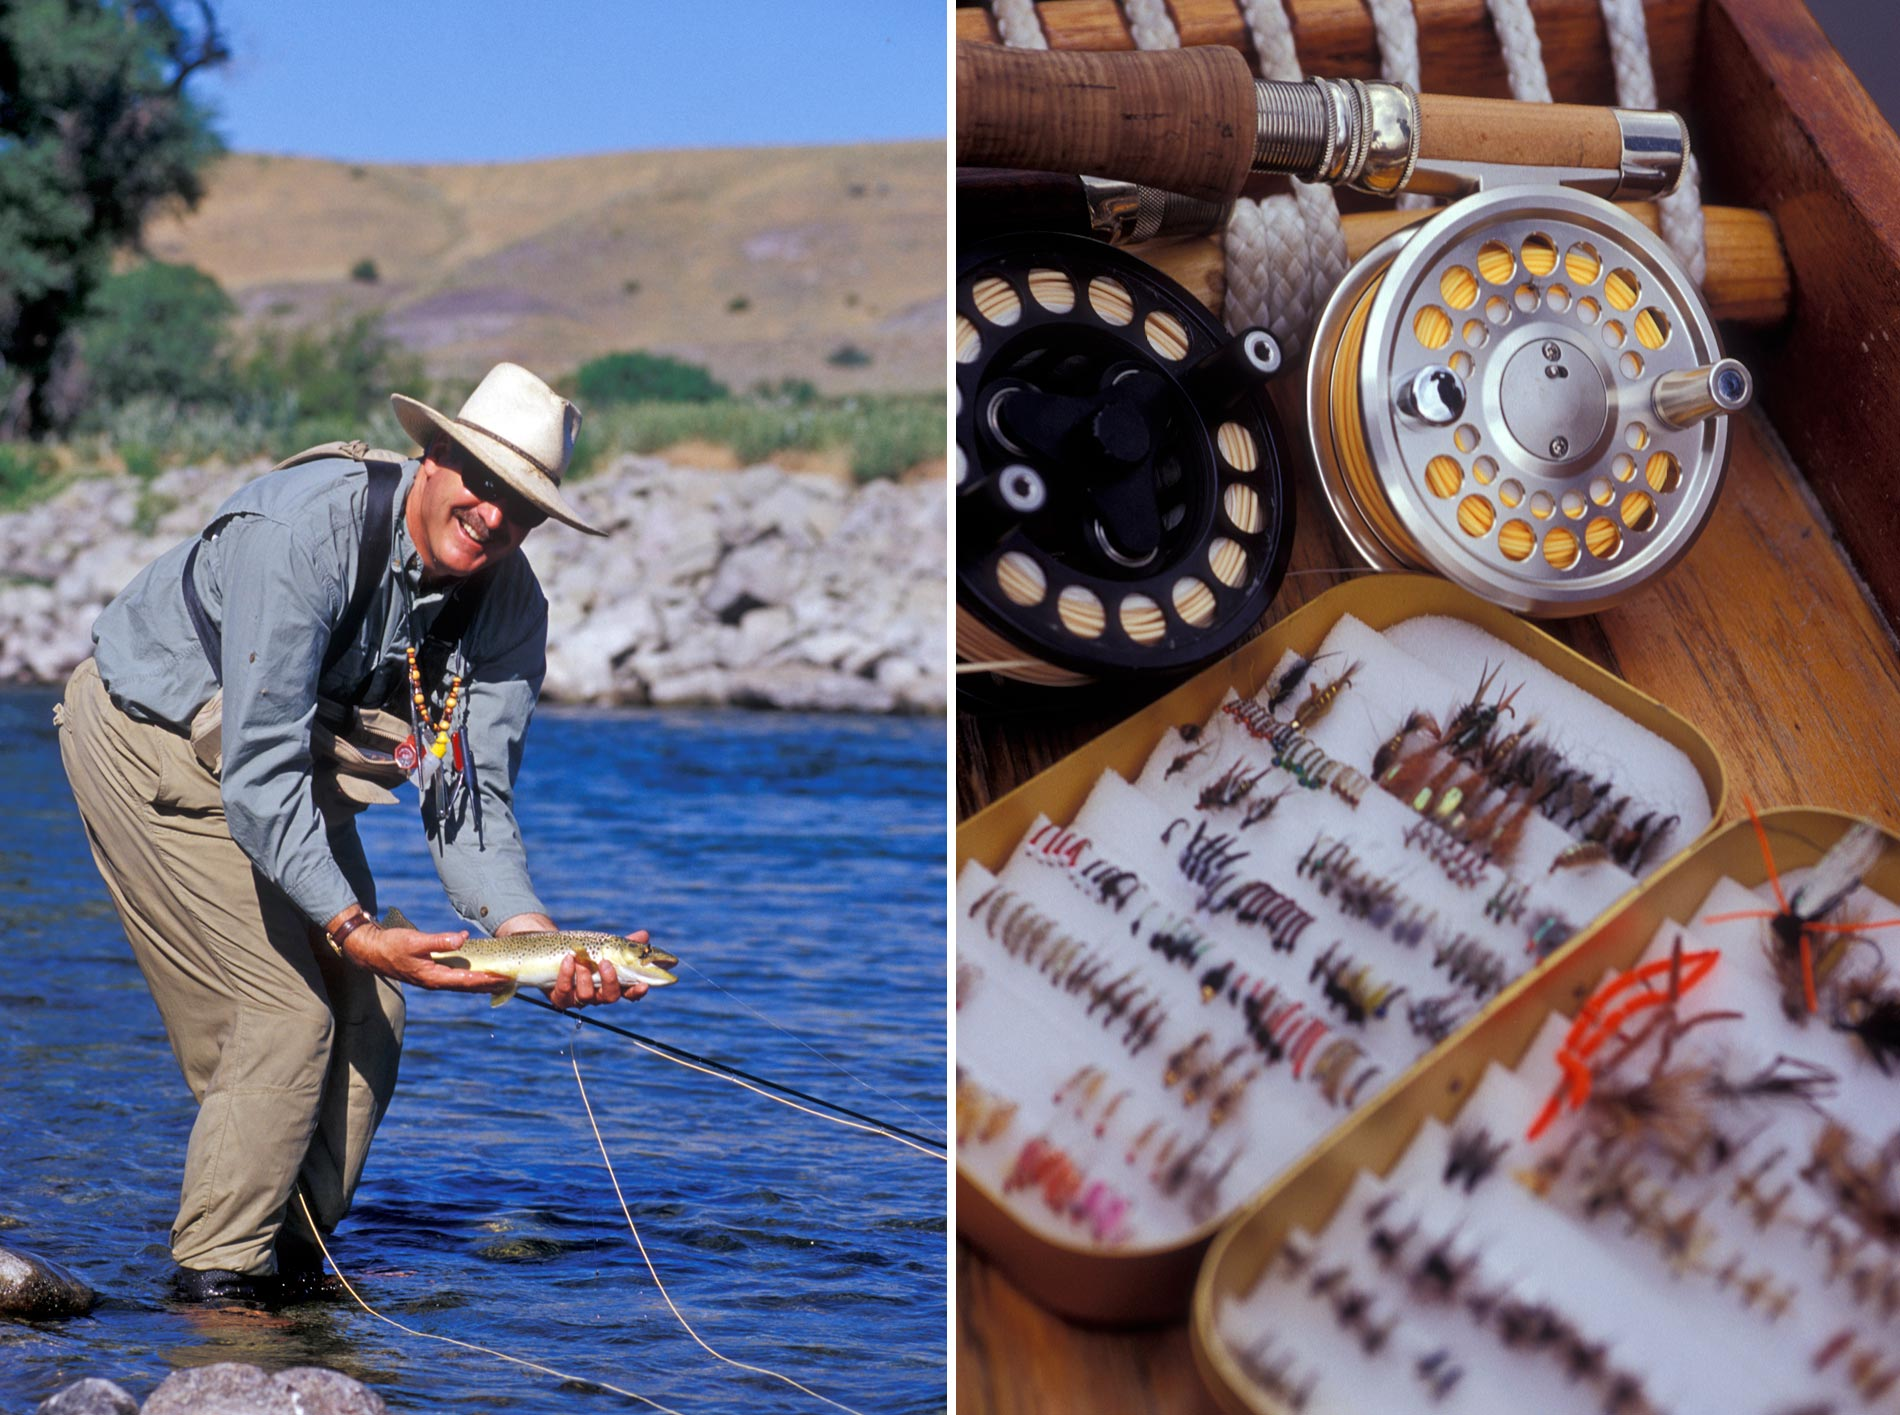 Fly fishing on Yellowstone River © Matteo Brogi